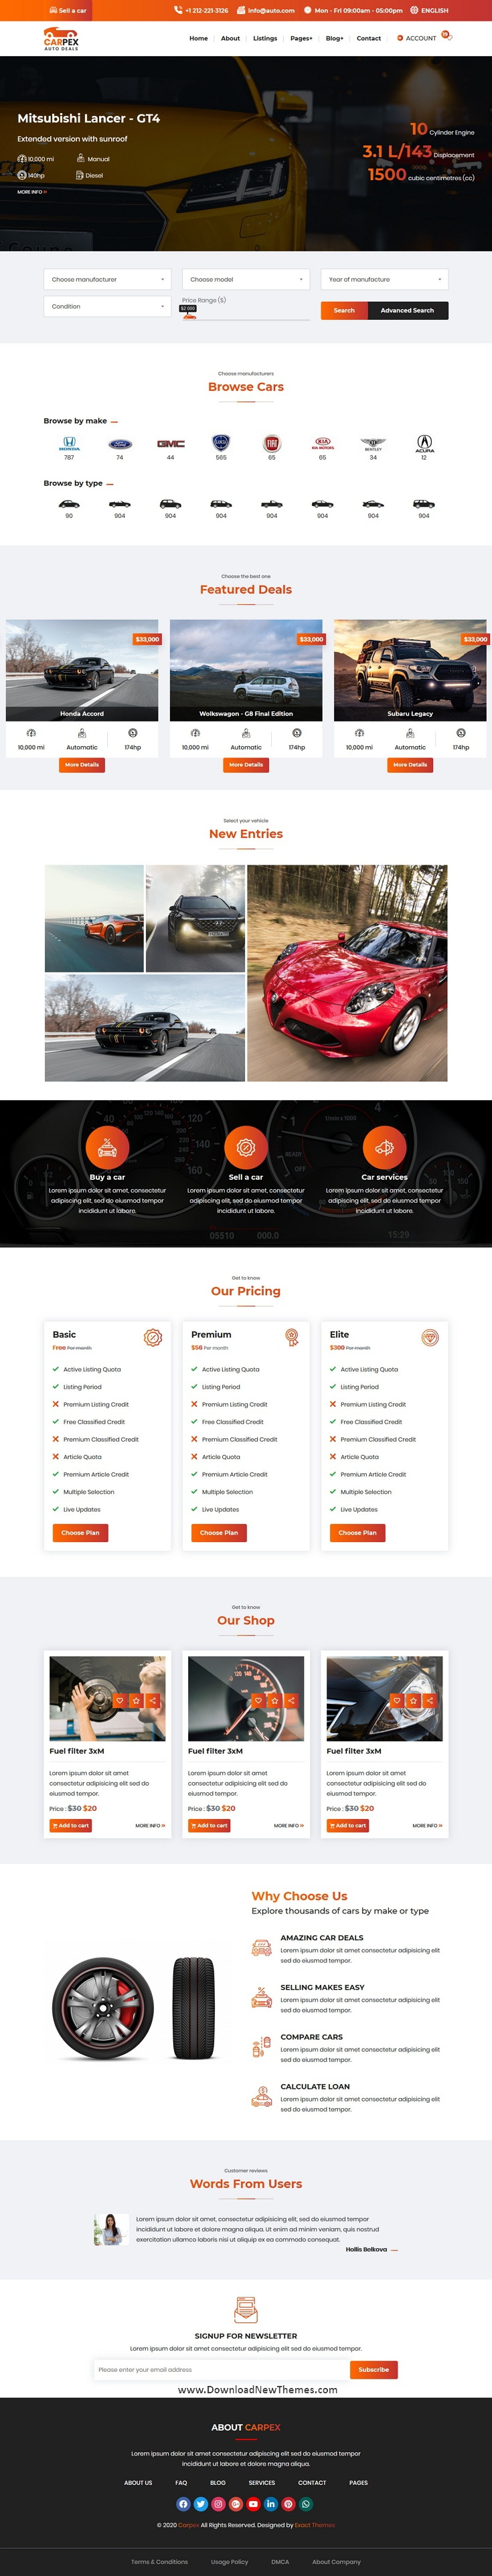 Auto Deals Website Template